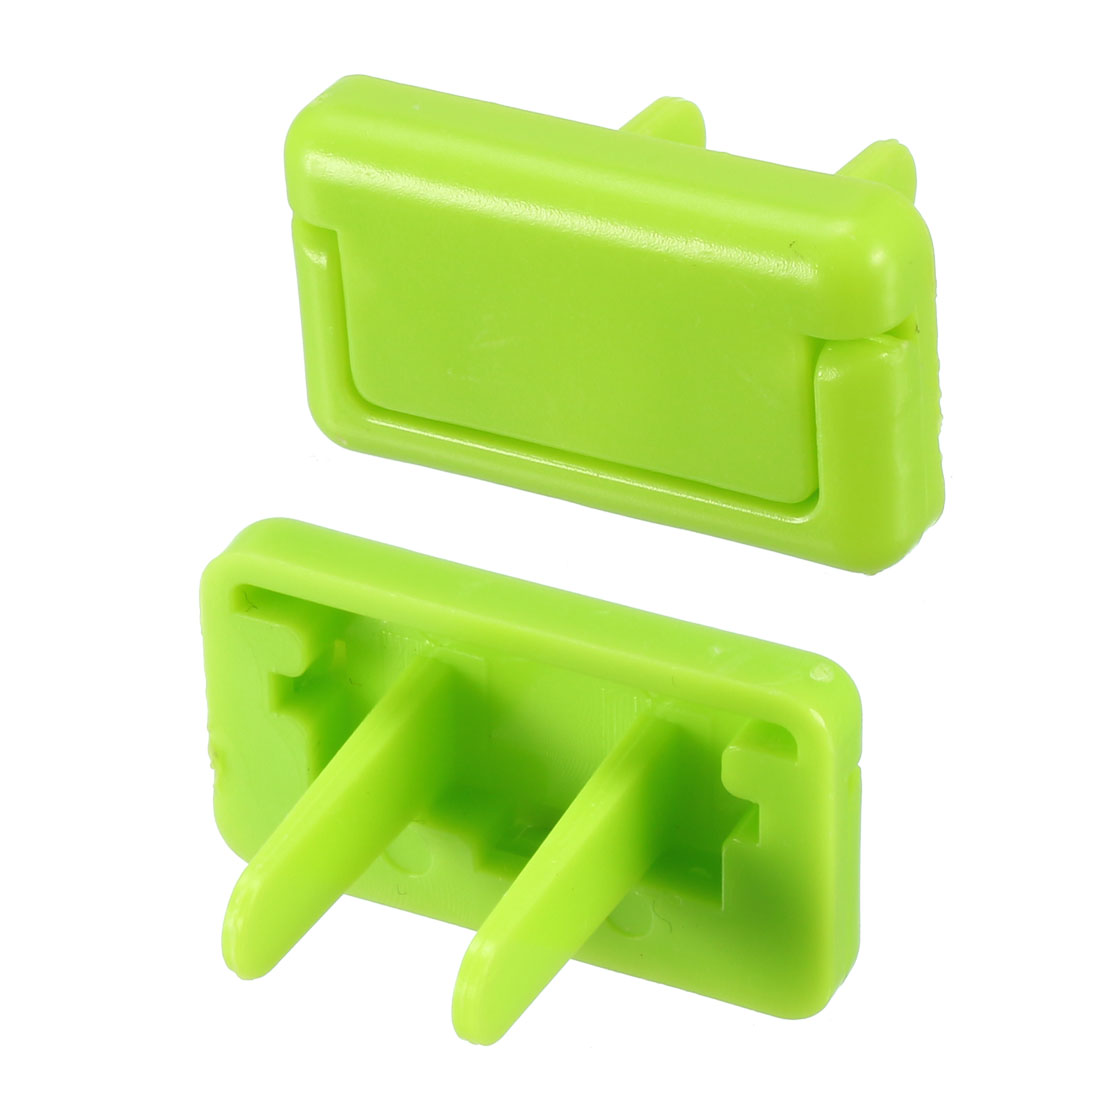 US Stand Power Socket Covers Durable Electrical Protector Cap Green 55 Pcs